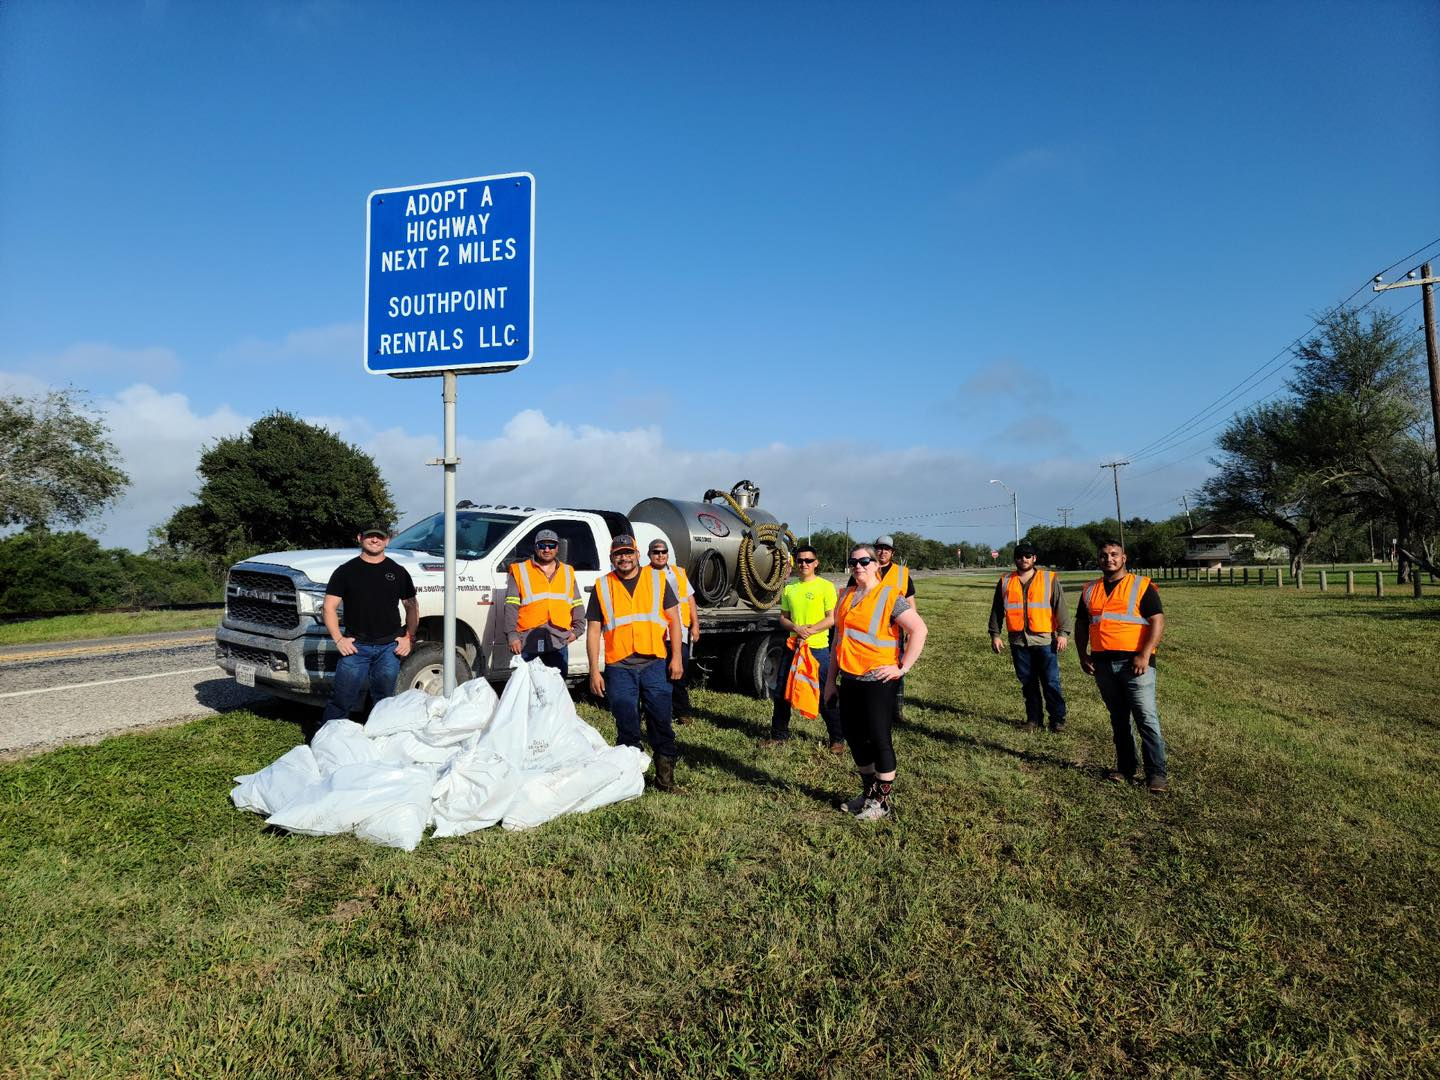 Revealing an Adopt a Highway sign with SouthPoint Rentals